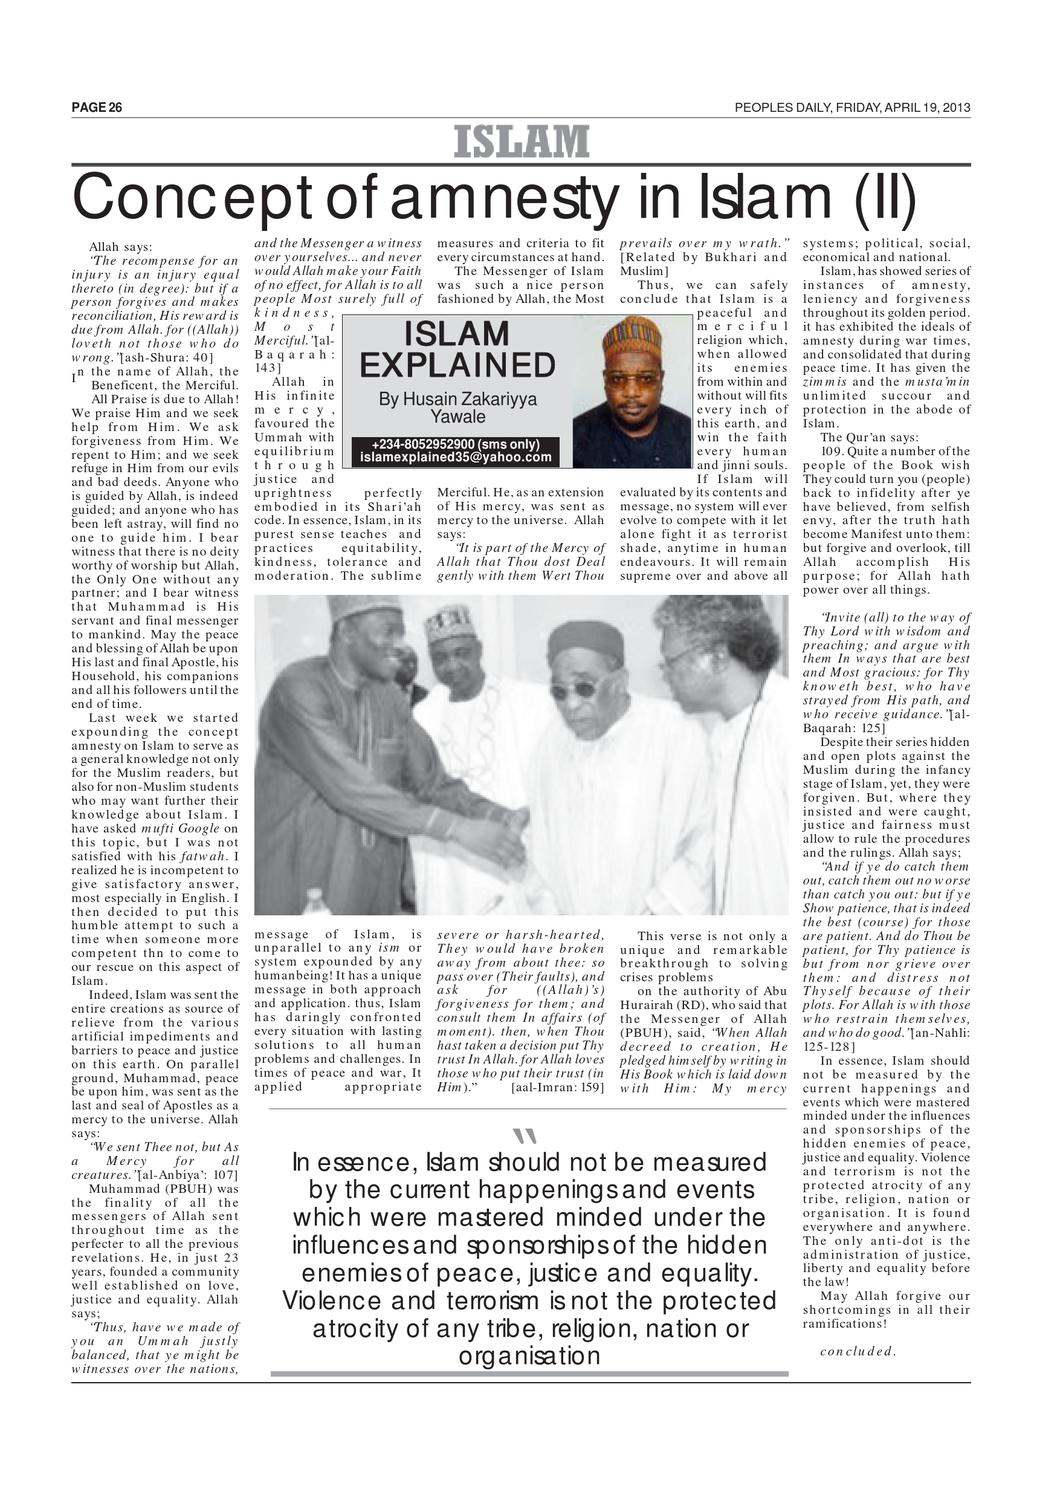 Peoples Daily Newspaper, Friday 19, April, 2013 by Peoples